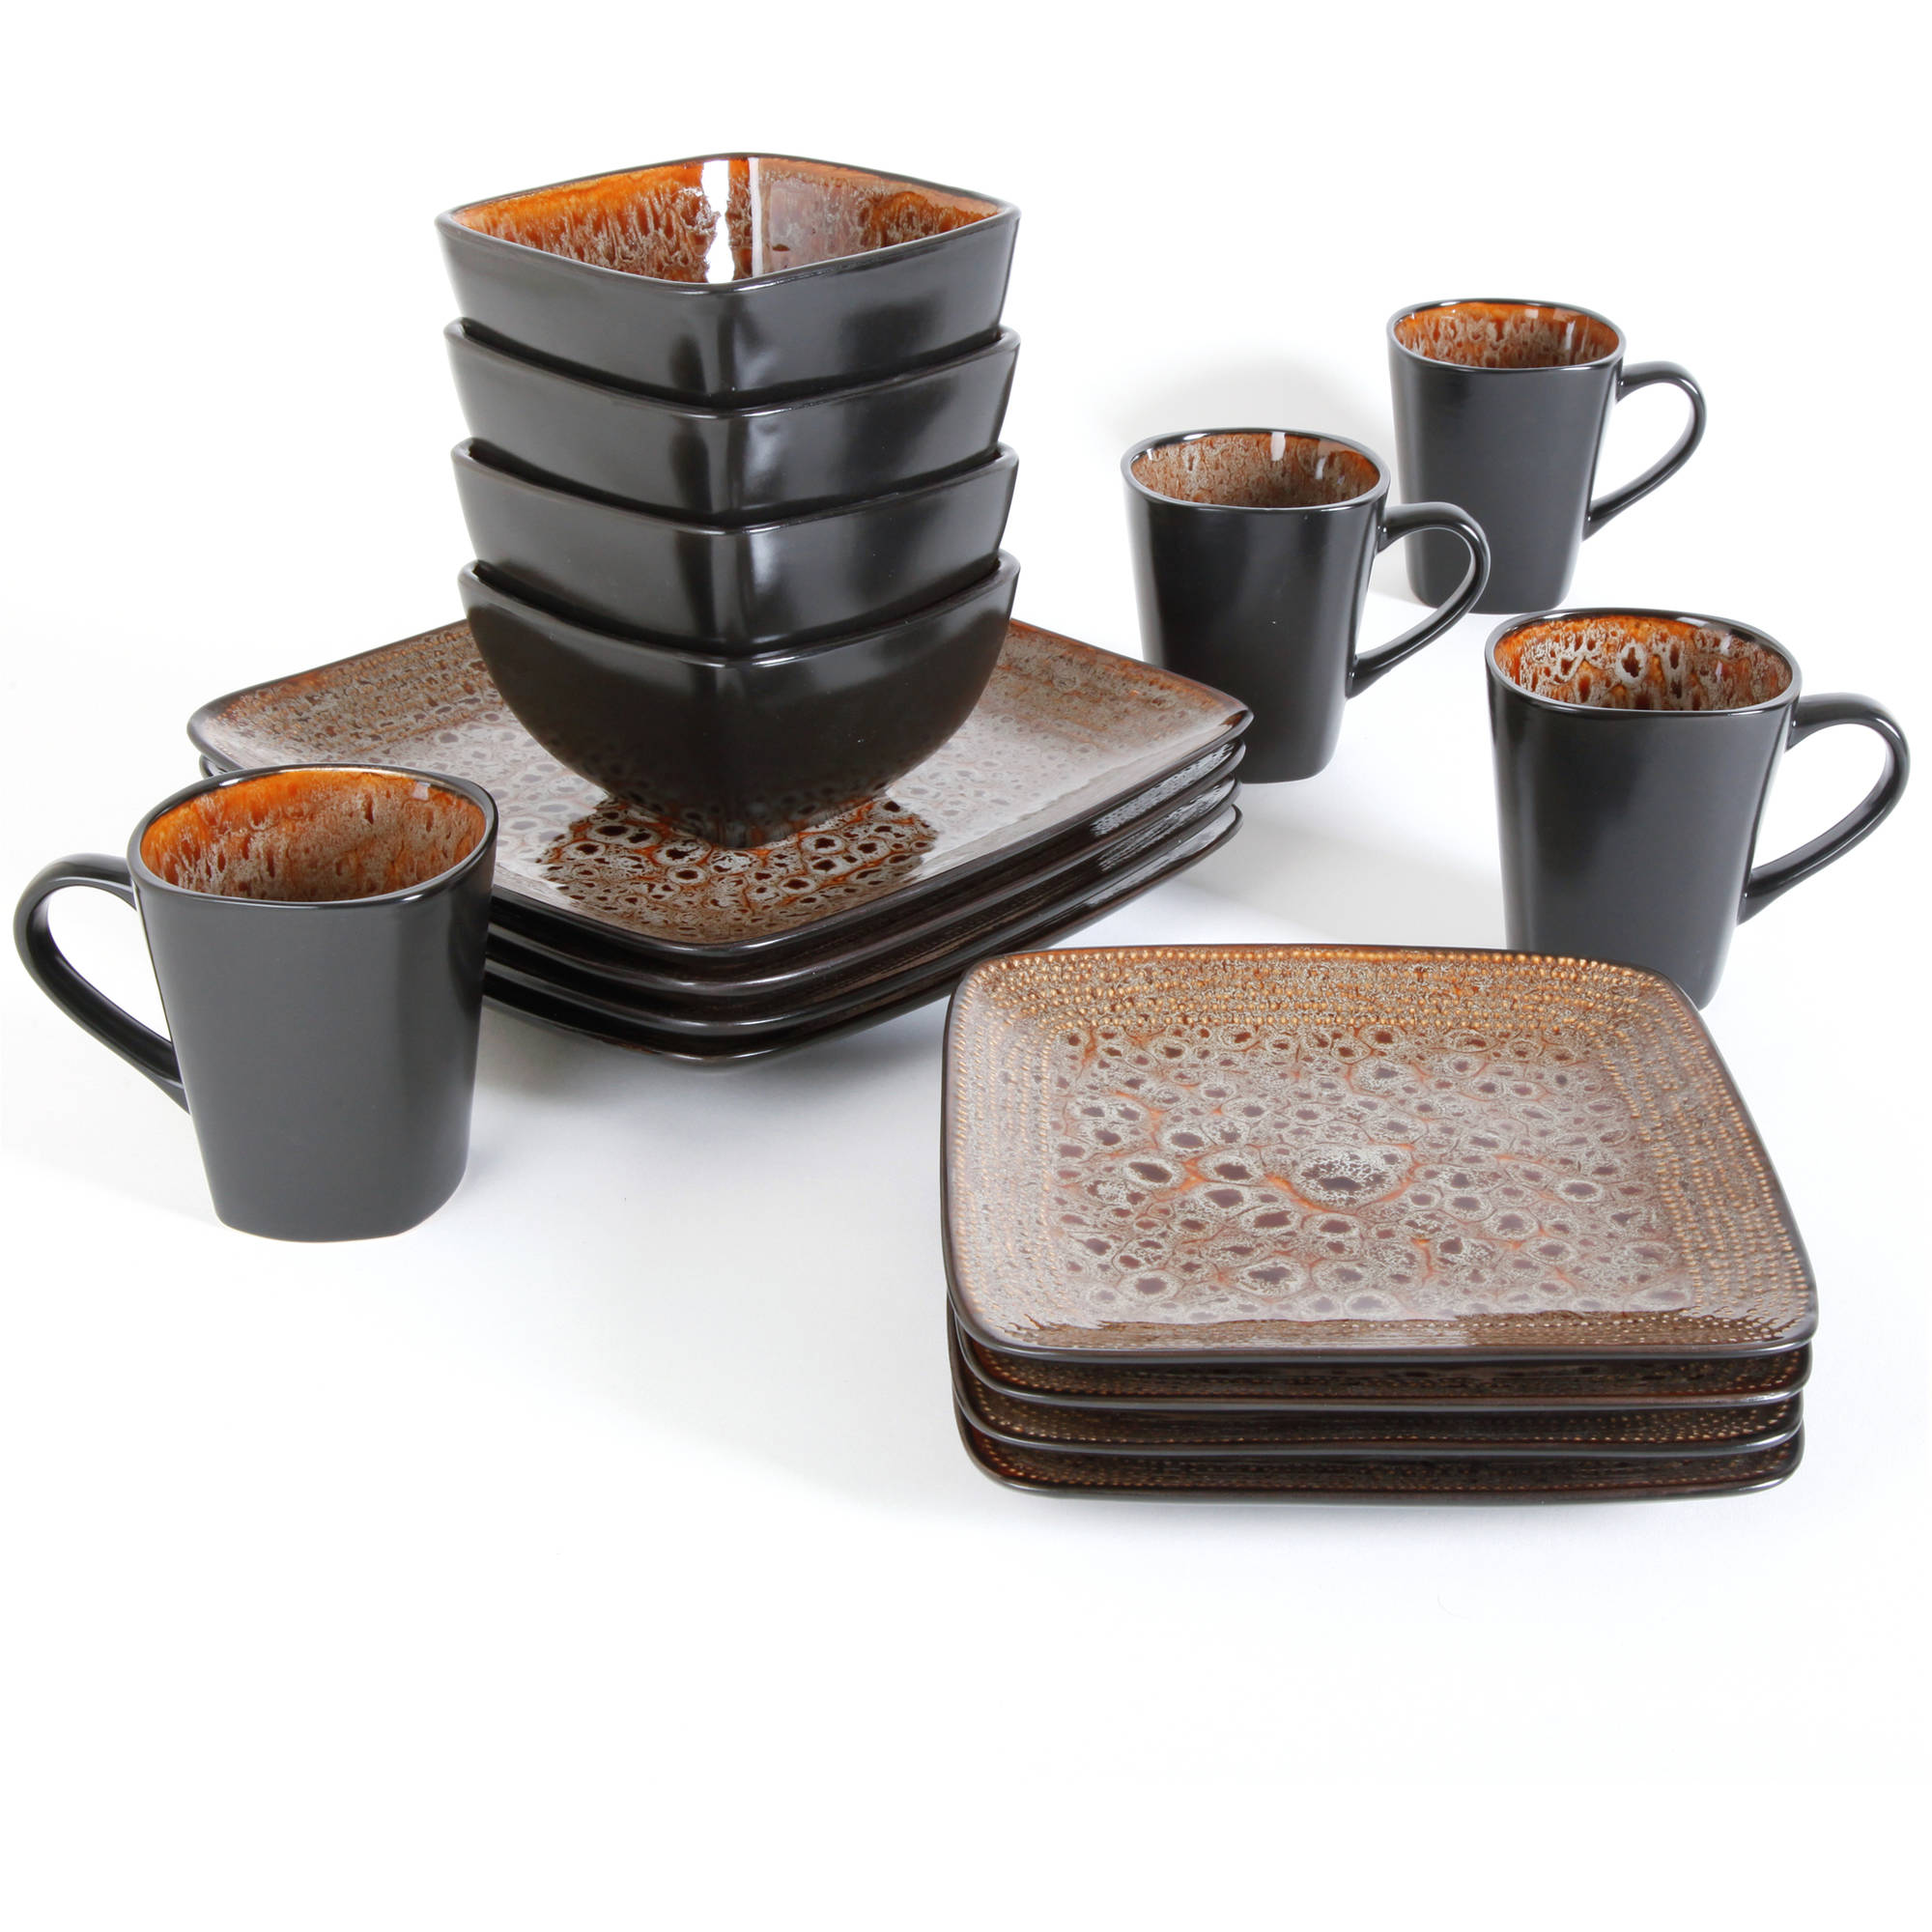 sc 1 st  Walmart & Better Homes and Gardens Atlas 16-Piece Dinnerware Set - Walmart.com